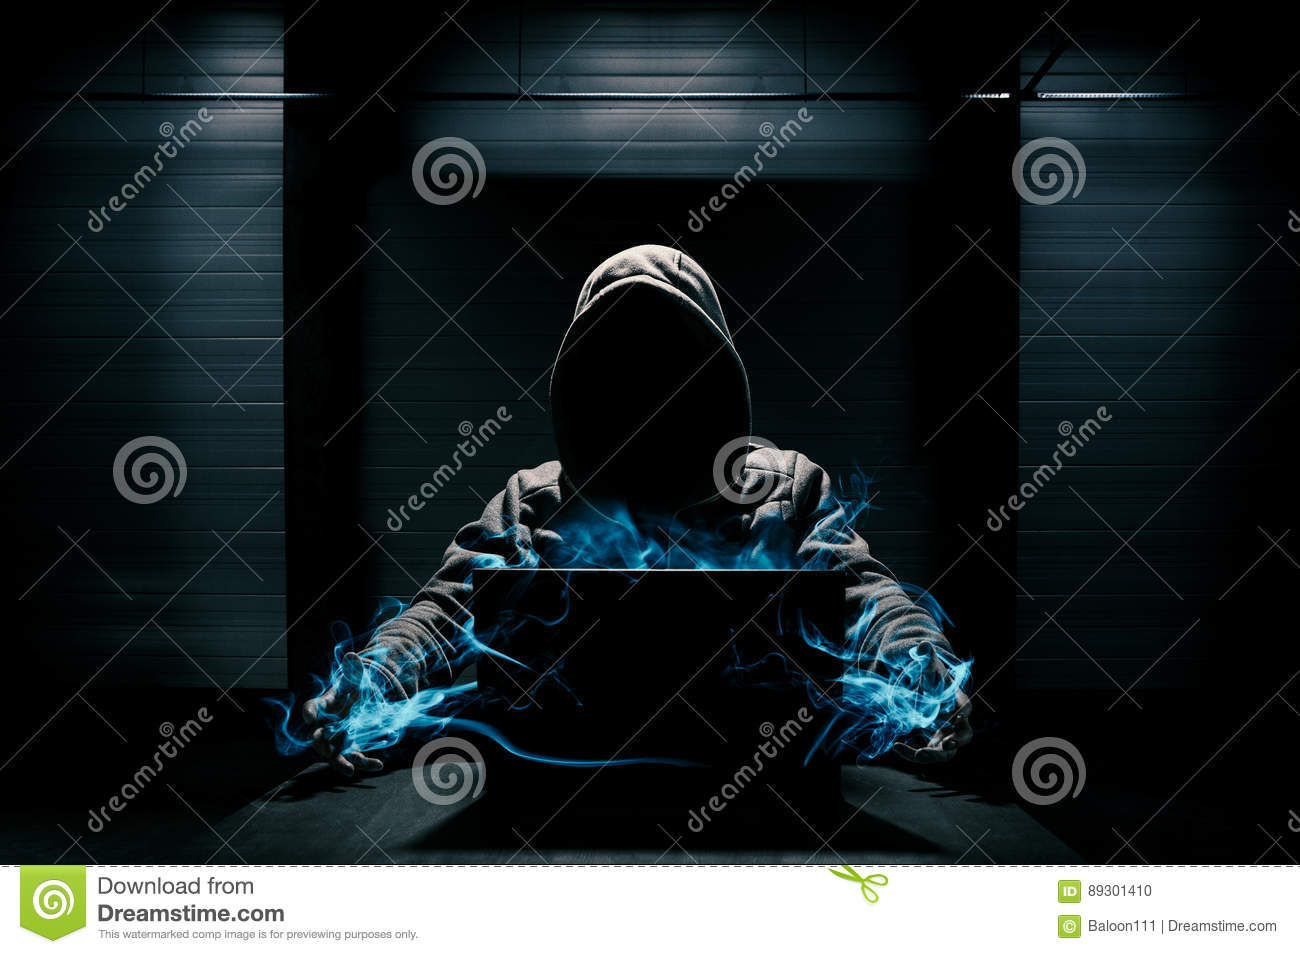 Abstract conception of hacker